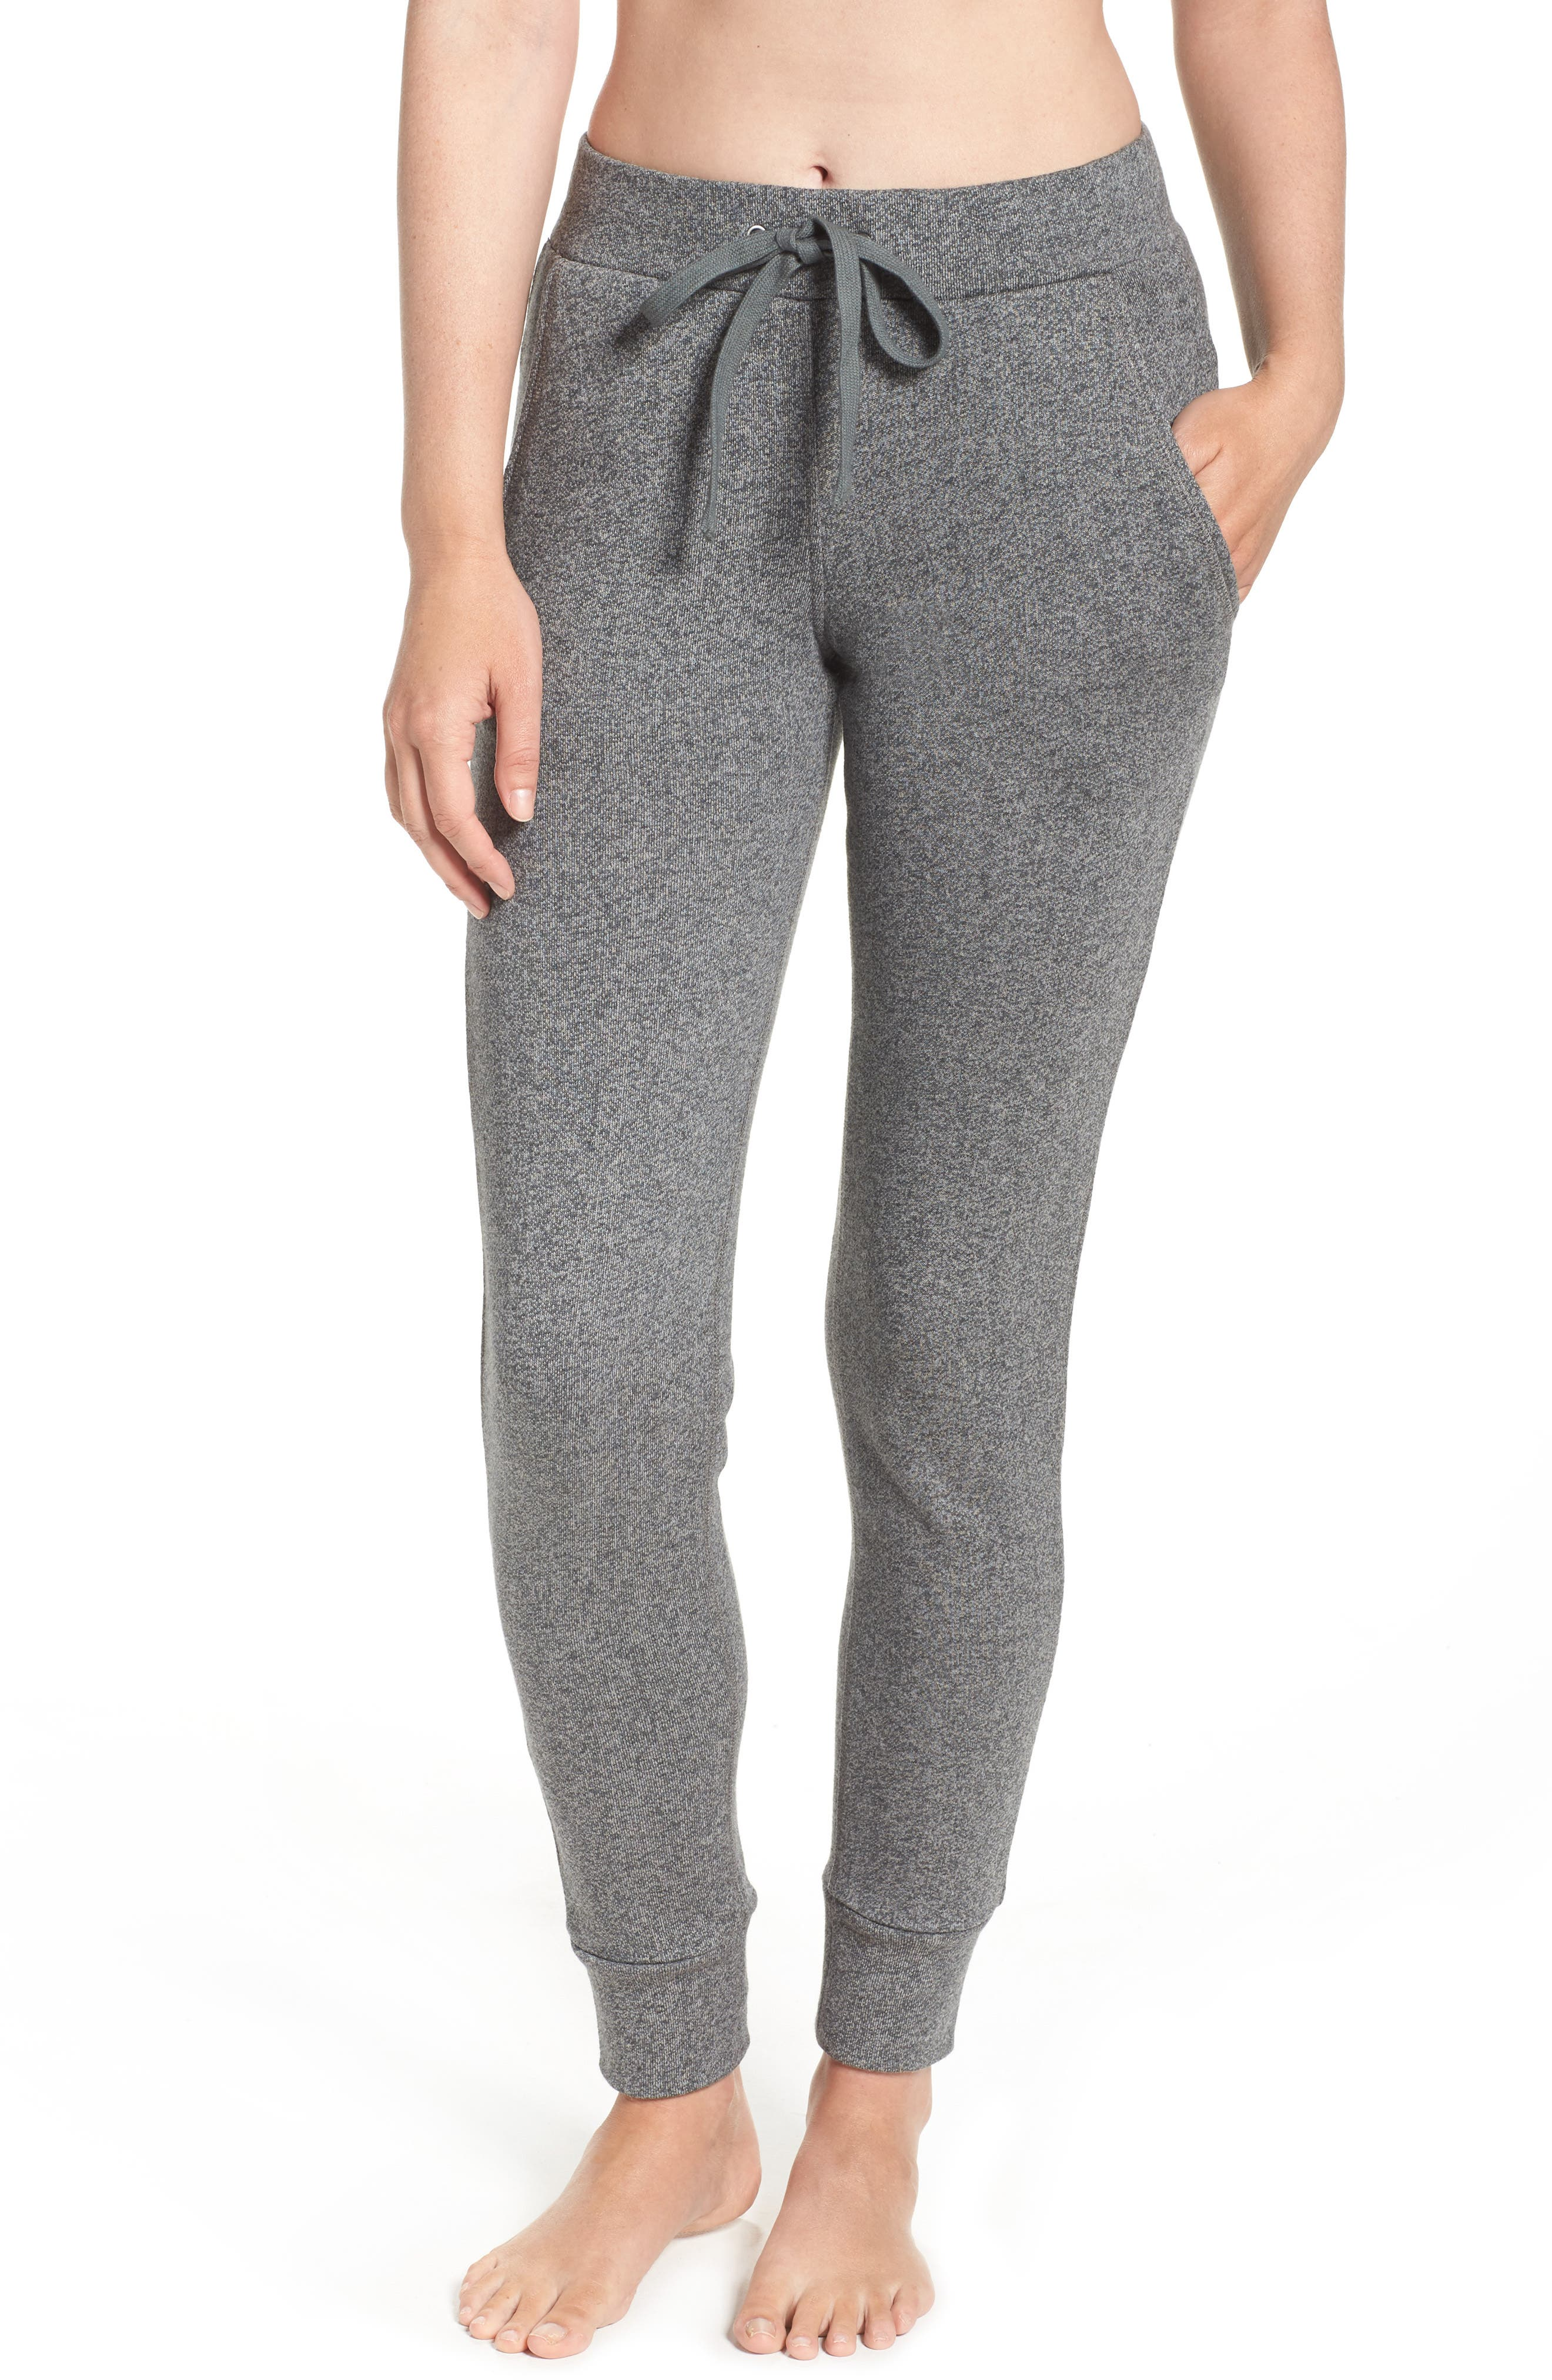 Clementine Terrry Sweatpants,                         Main,                         color, Charcoal Heather